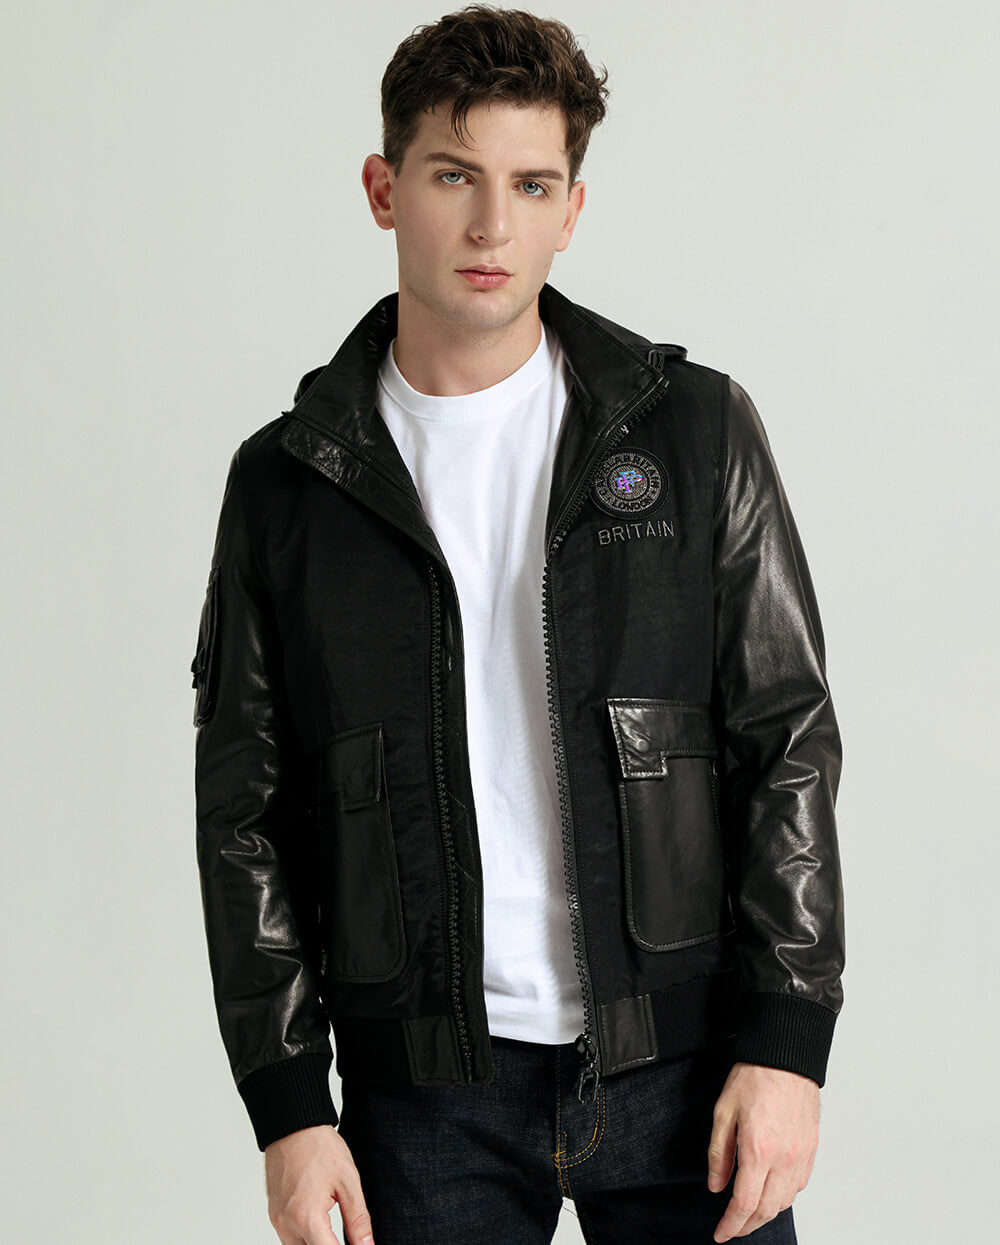 Detachable Embroidered Appliqued Minimal Goatskin Leather Jacket